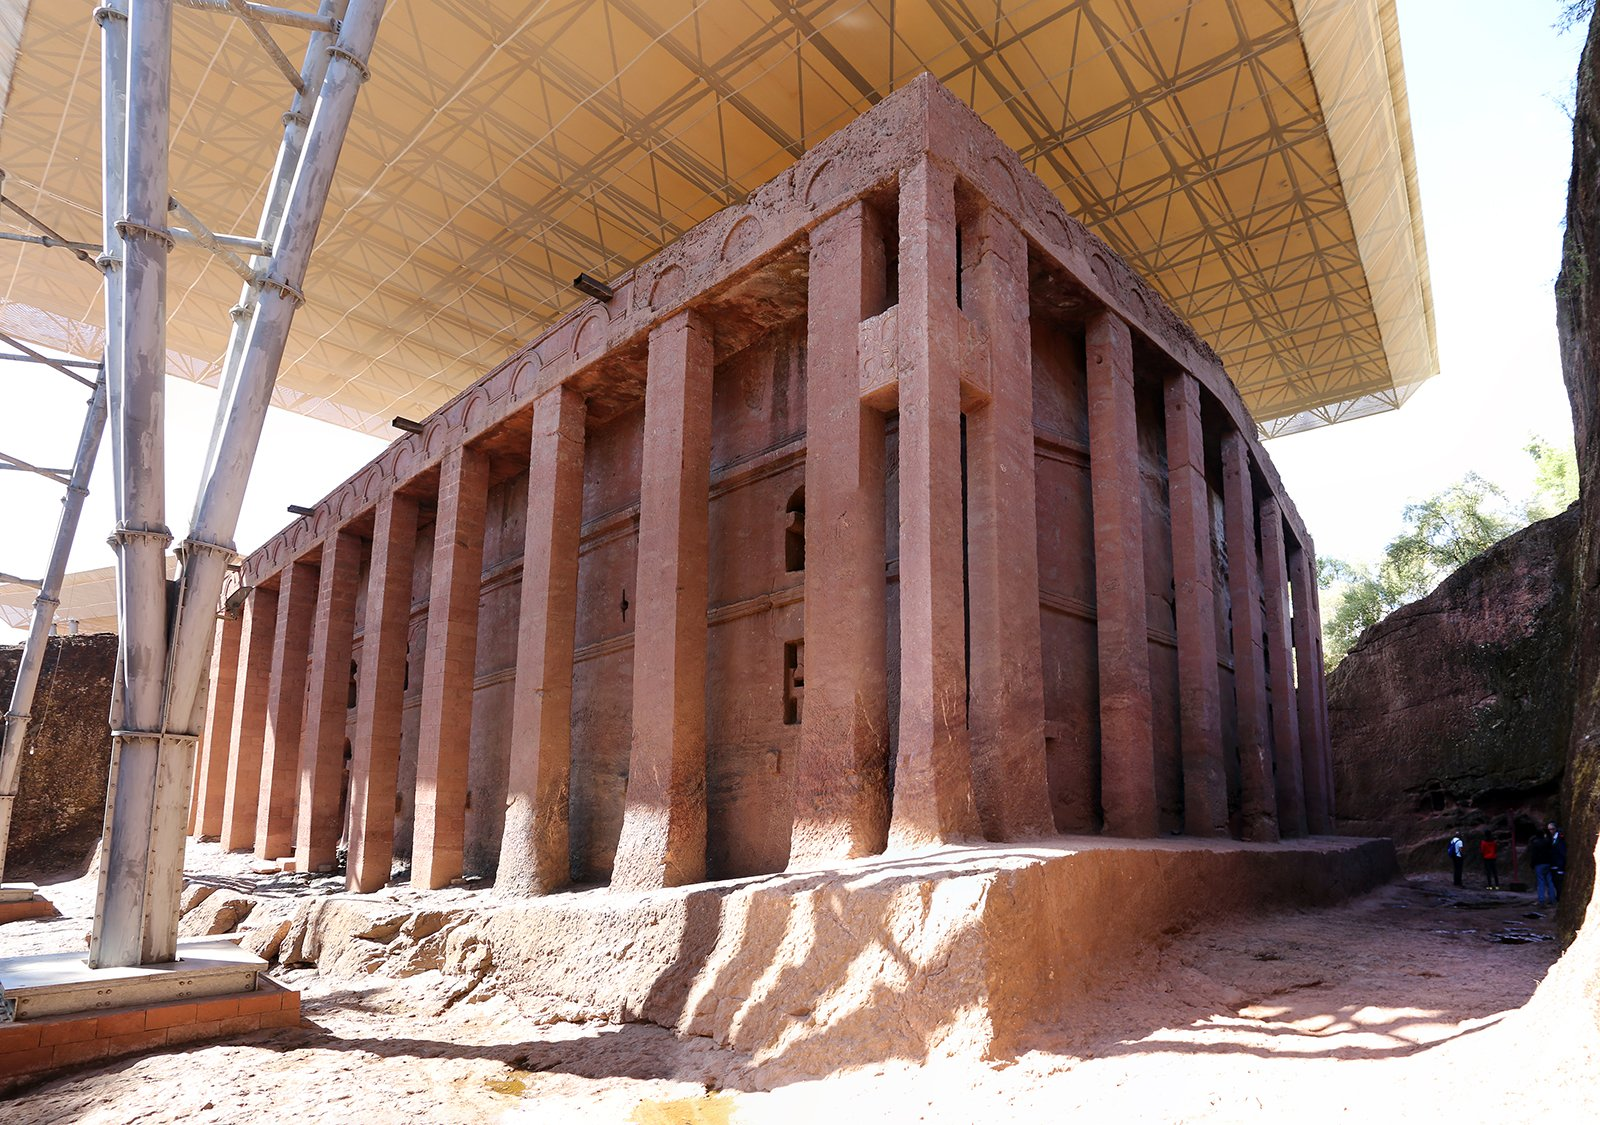 People stand beside the walls of Biete Medhane Alem, believed to be the largest monolithic church in the world, in Lalibela, Ethiopia. Photo by Sailko/Creative Commons